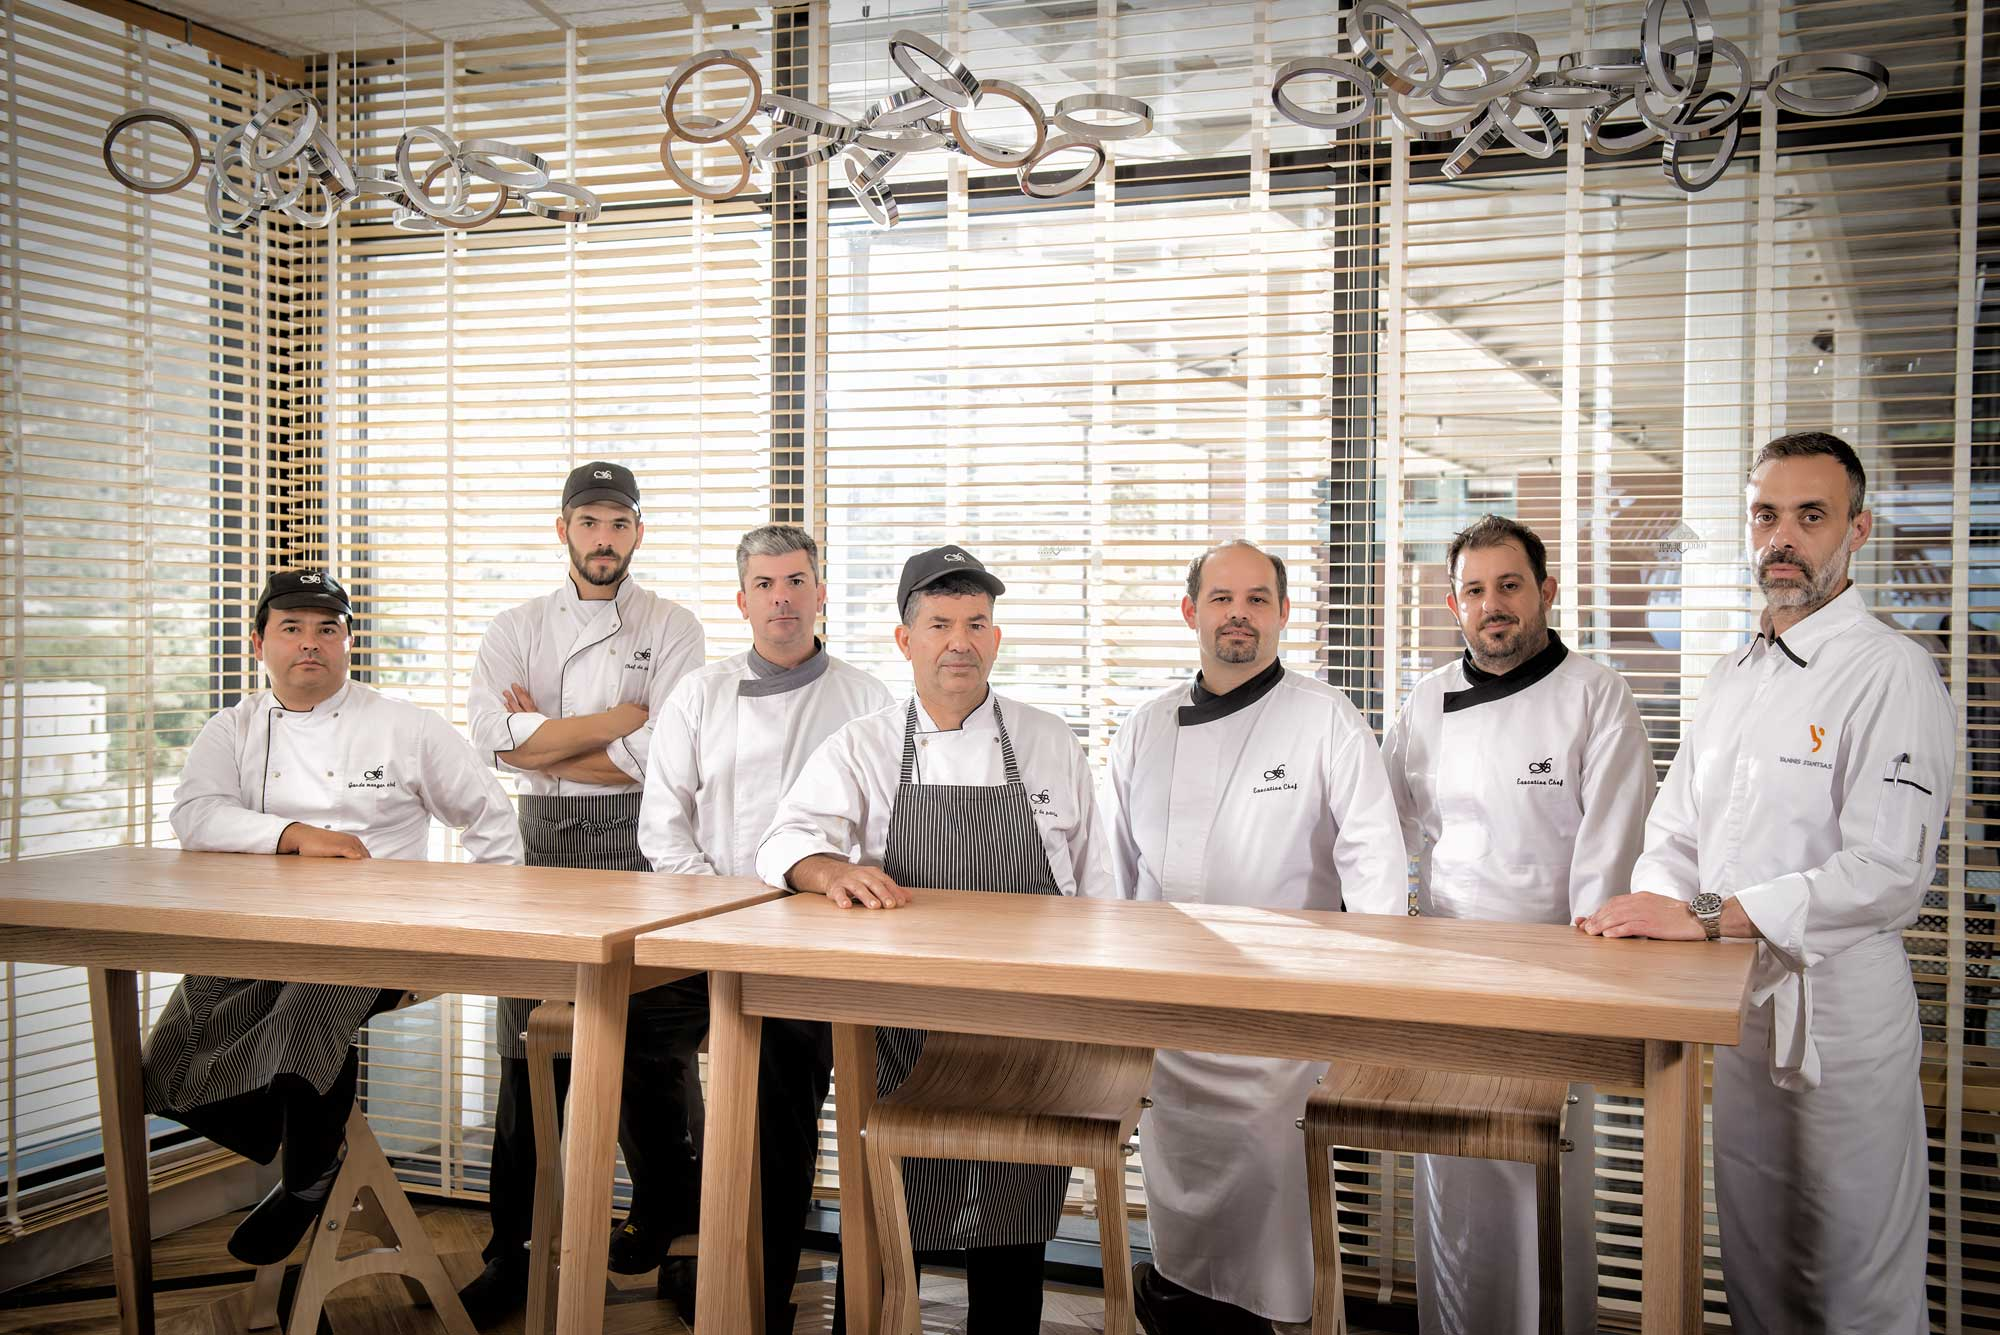 Yannis Stanitsas and his team at Fodele.